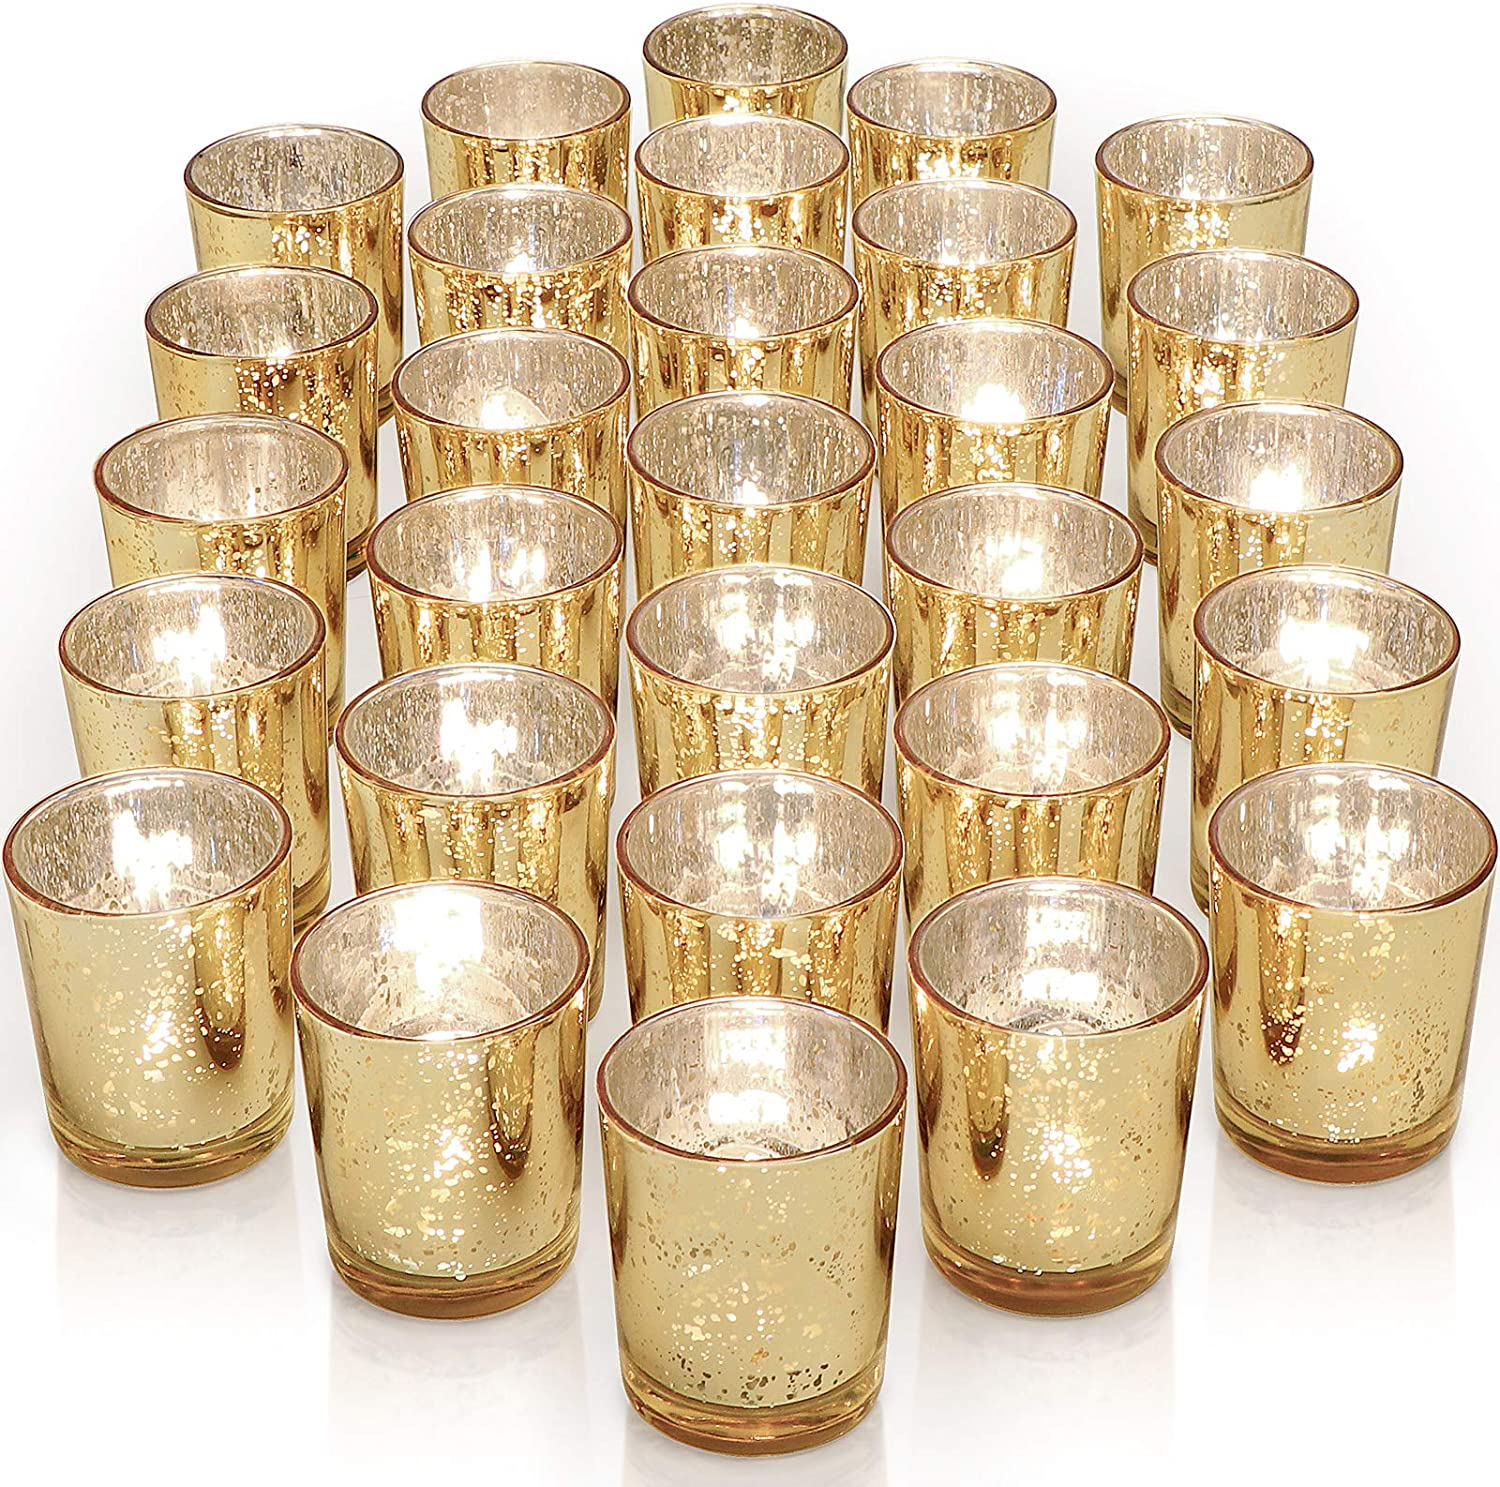 OFFicial Letine Gold Votive Candle Holders Set Speckled Mercury - 36 of G Popular products